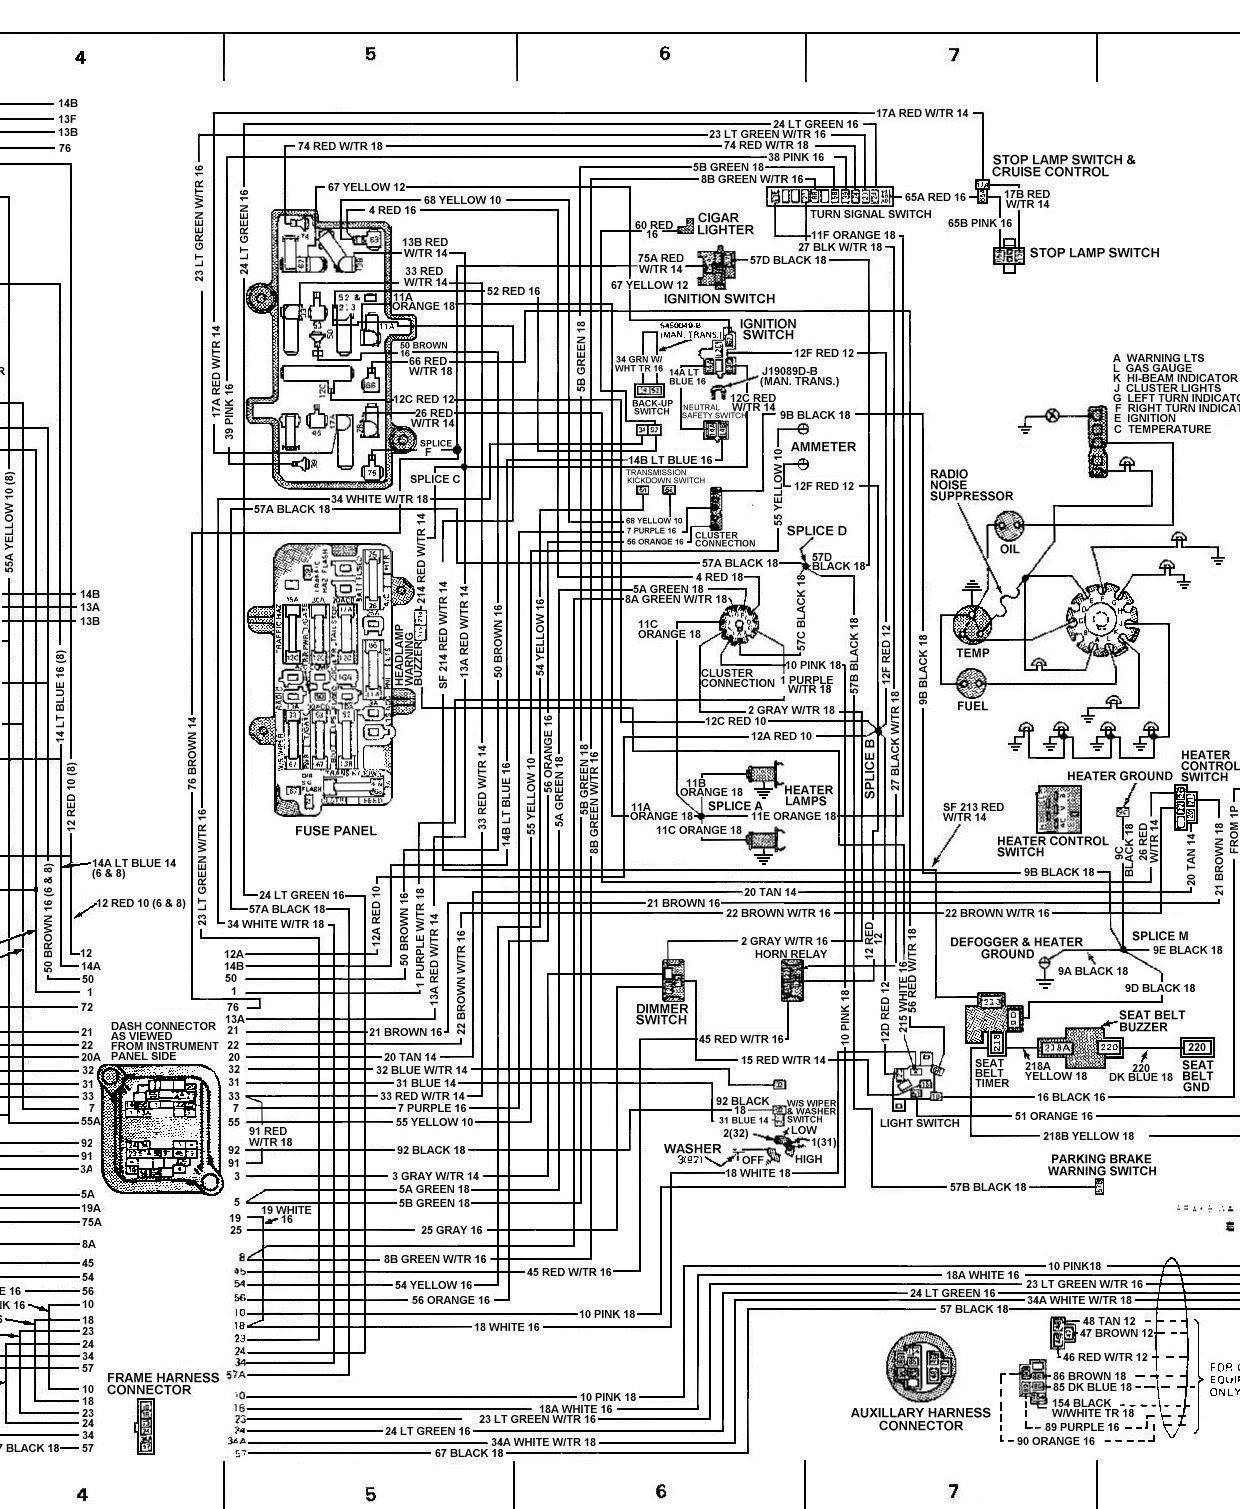 2000 Bmw E46 Radio Wiring Diagram Ignition Chevy Diagrams / Schematics | Avalanche 2004 1500 Pinterest Honda Accord, Sedans And ...